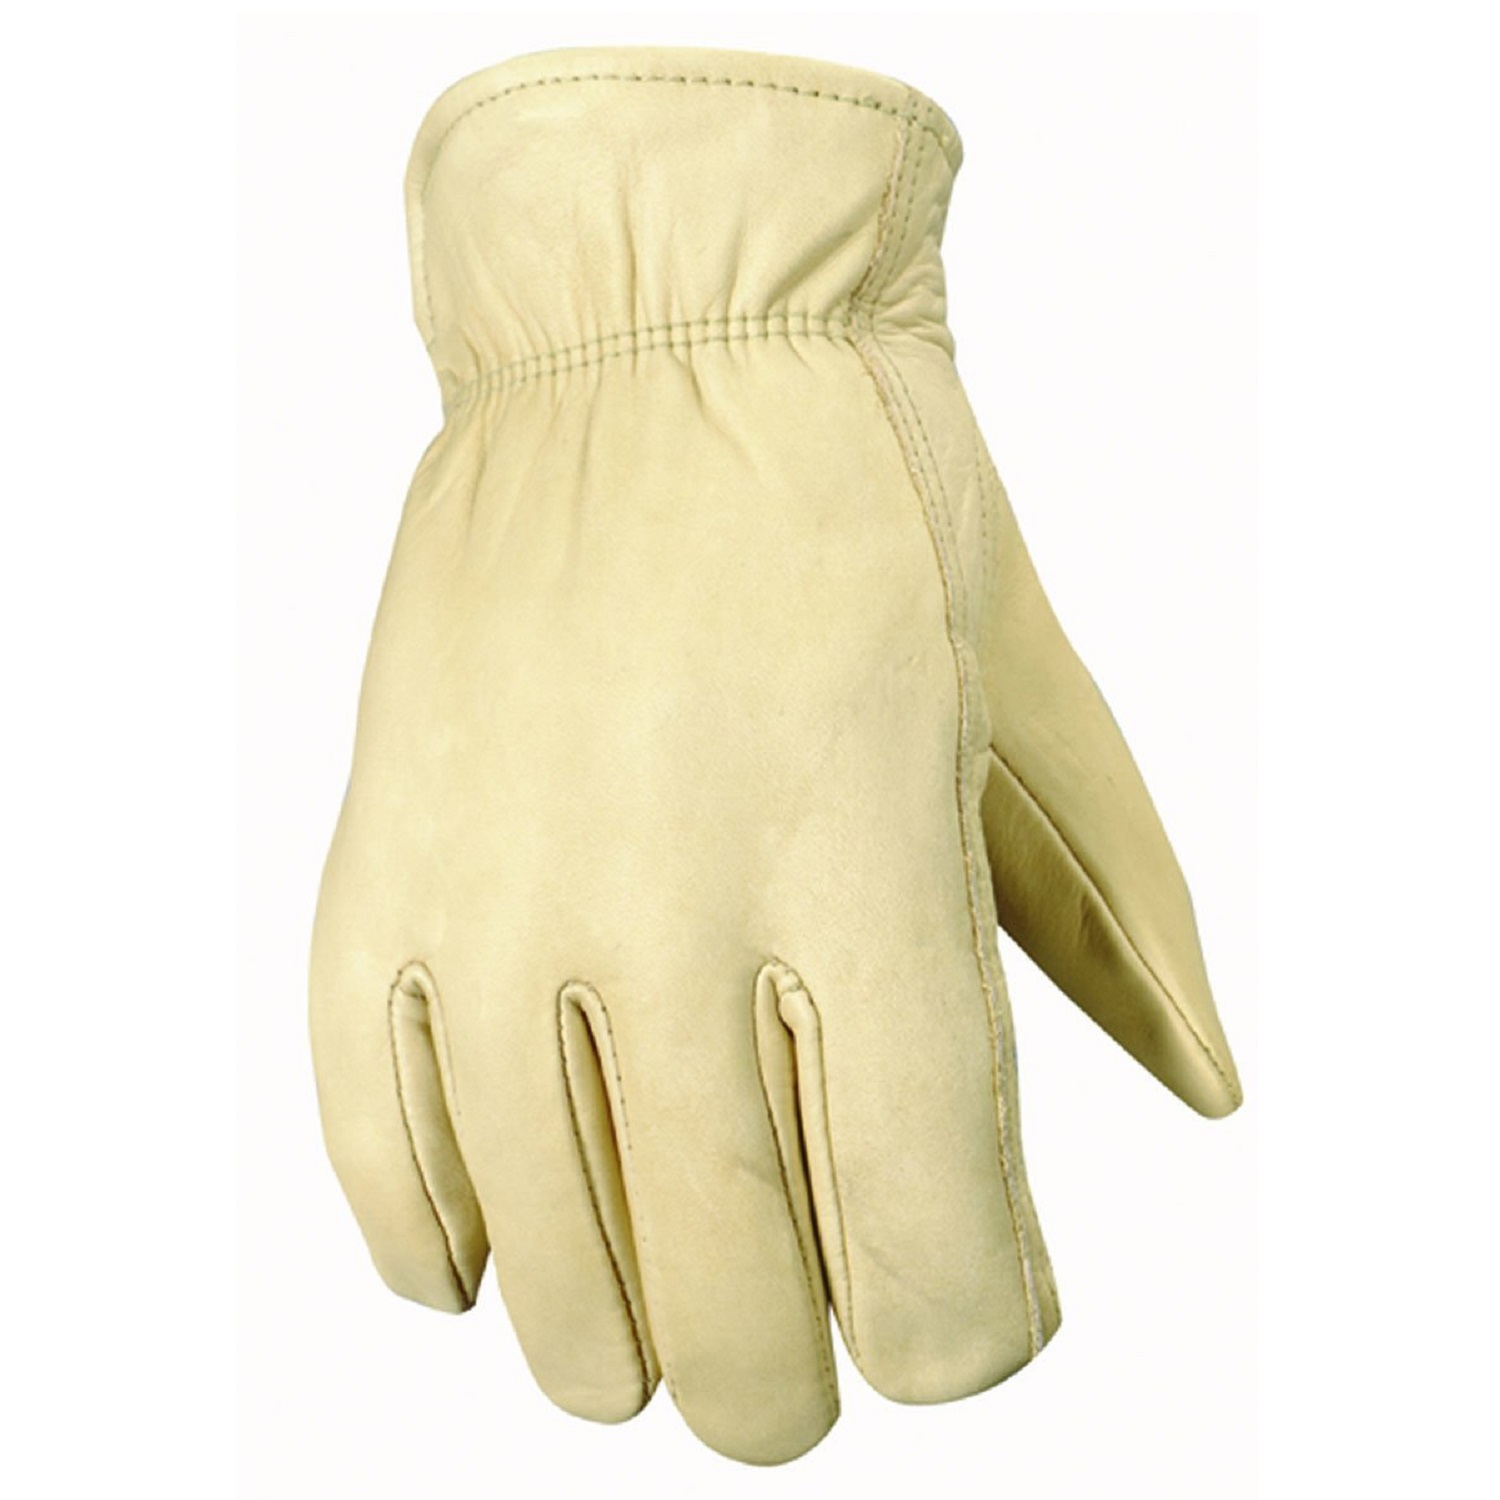 Leather work gloves with thinsulate lining - Wells Lamont Thinsulate Lined Leather Cowhide Work Gloves L Walmart Com